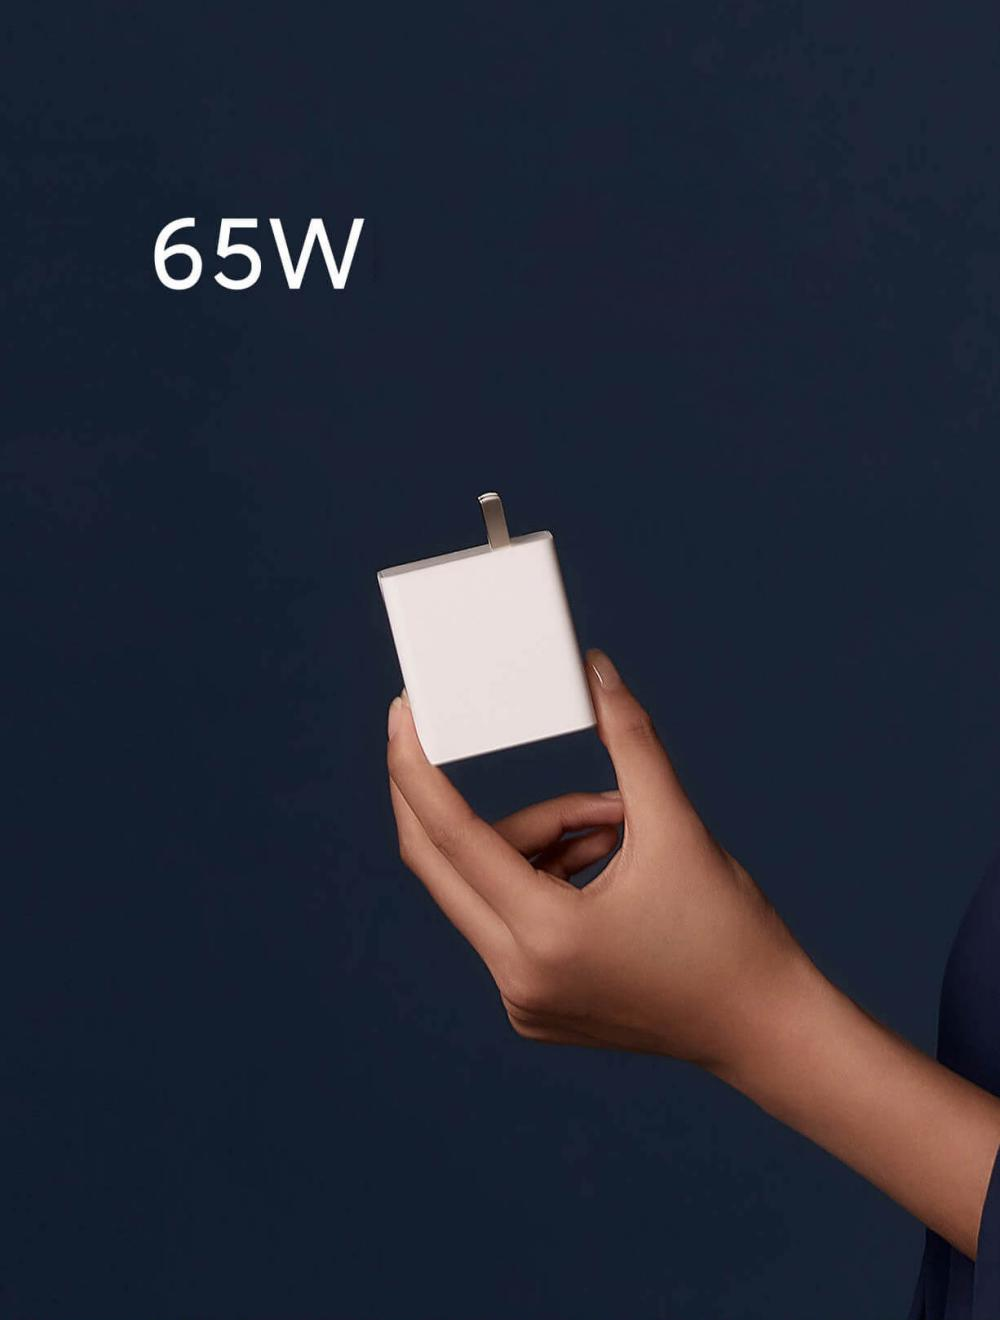 Xiaomi Mdy 11 Eb Super Fast Charging 65w Power Adapter With Type C Cable (1)